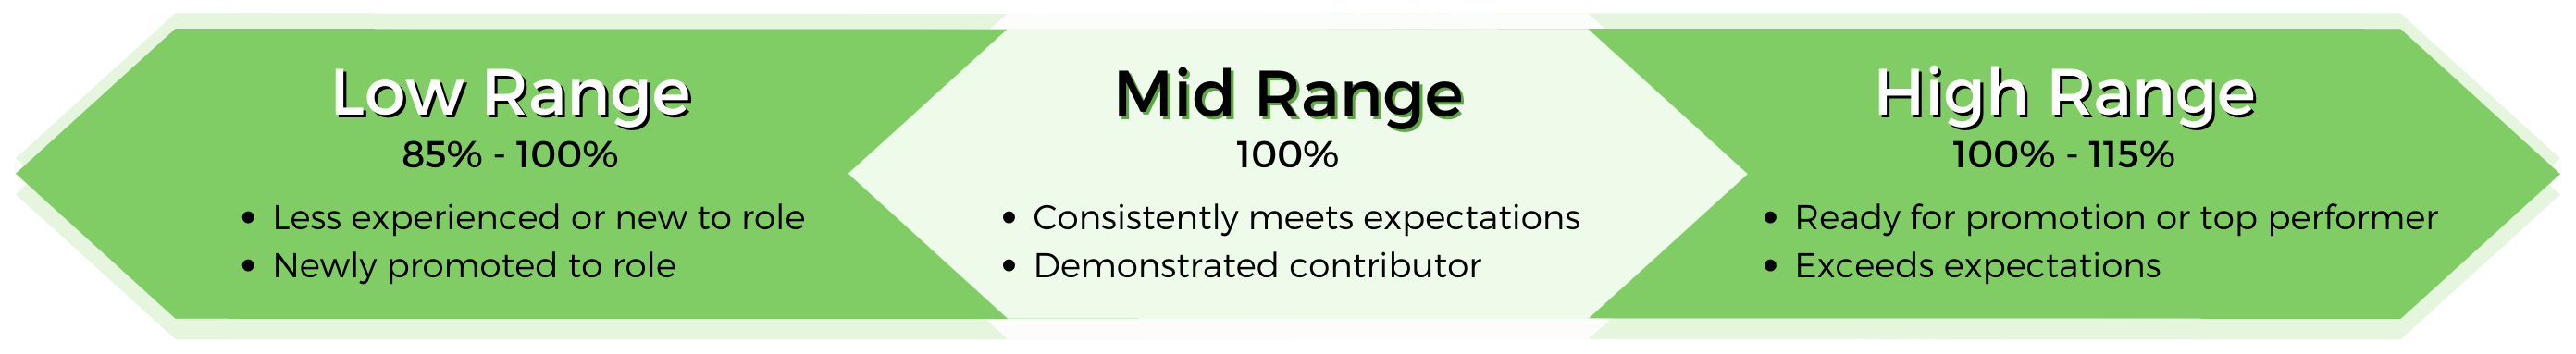 3 Compensation ranges: Low range (minimum) is for less experienced or employees new to the role. Mid range (midpoint) are for employees who consistently meet expectations. High range (maximum) is for top performers.